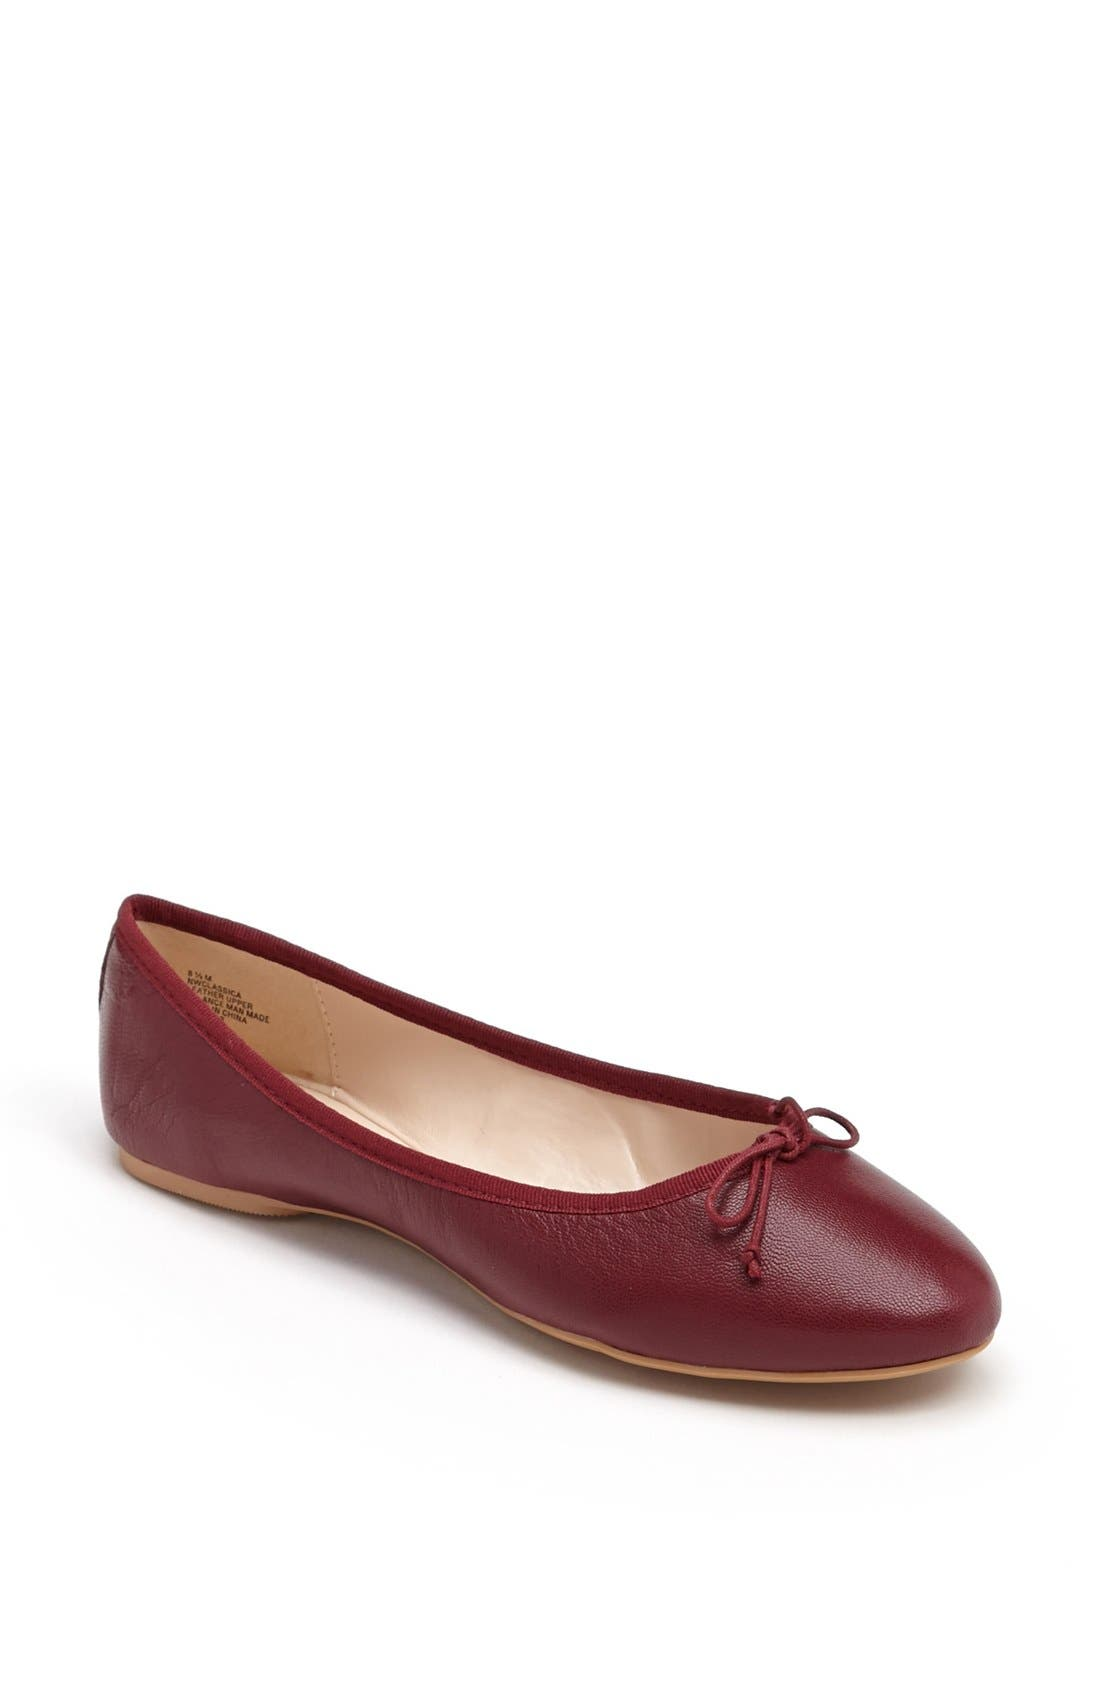 Main Image - Nine West 'Classica' Ballet Flat (Online Only)